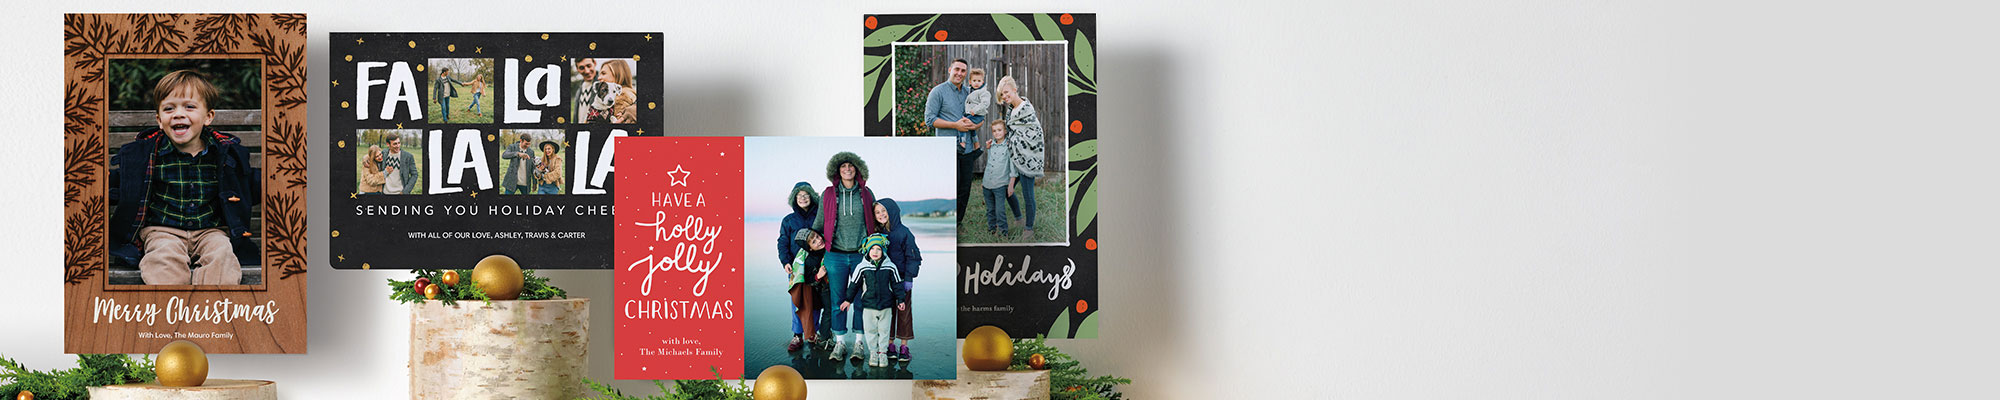 Photo Cards Send season's greetings with stunning designs fit for every fridge and mantle.